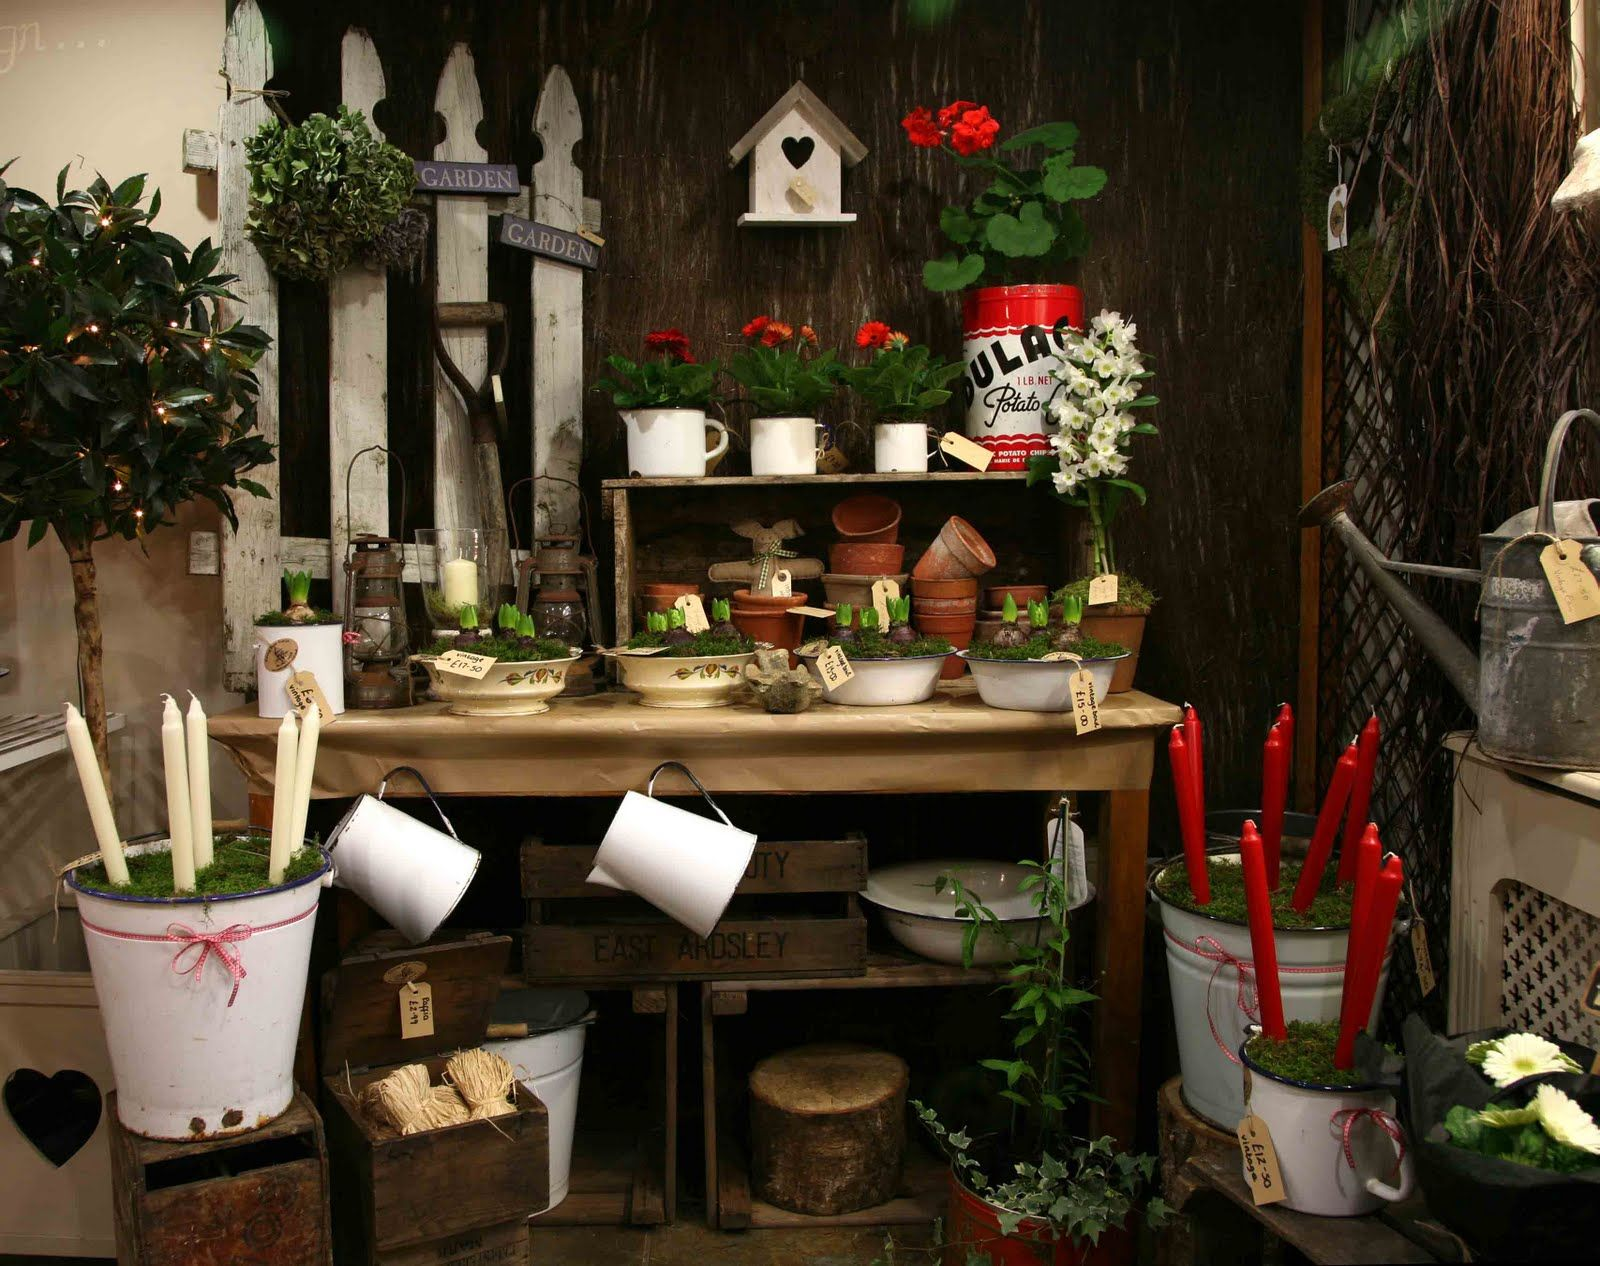 Found This Christmas Florist Shop Display And Loved It X